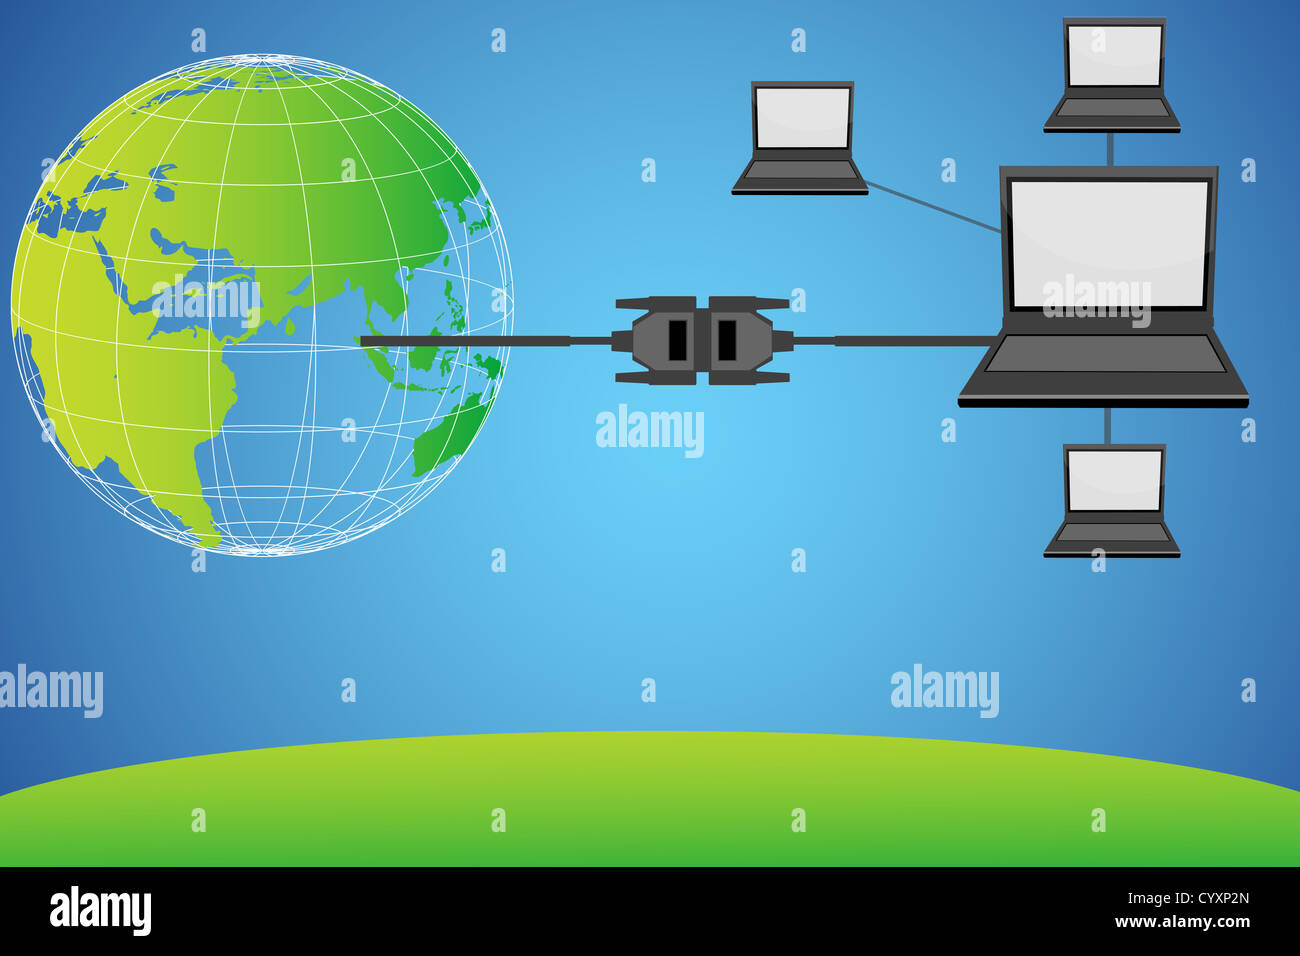 Illustration Of Laptops Connected With Globe Through Wire Stock Laptop Connections For Wiring Diagram